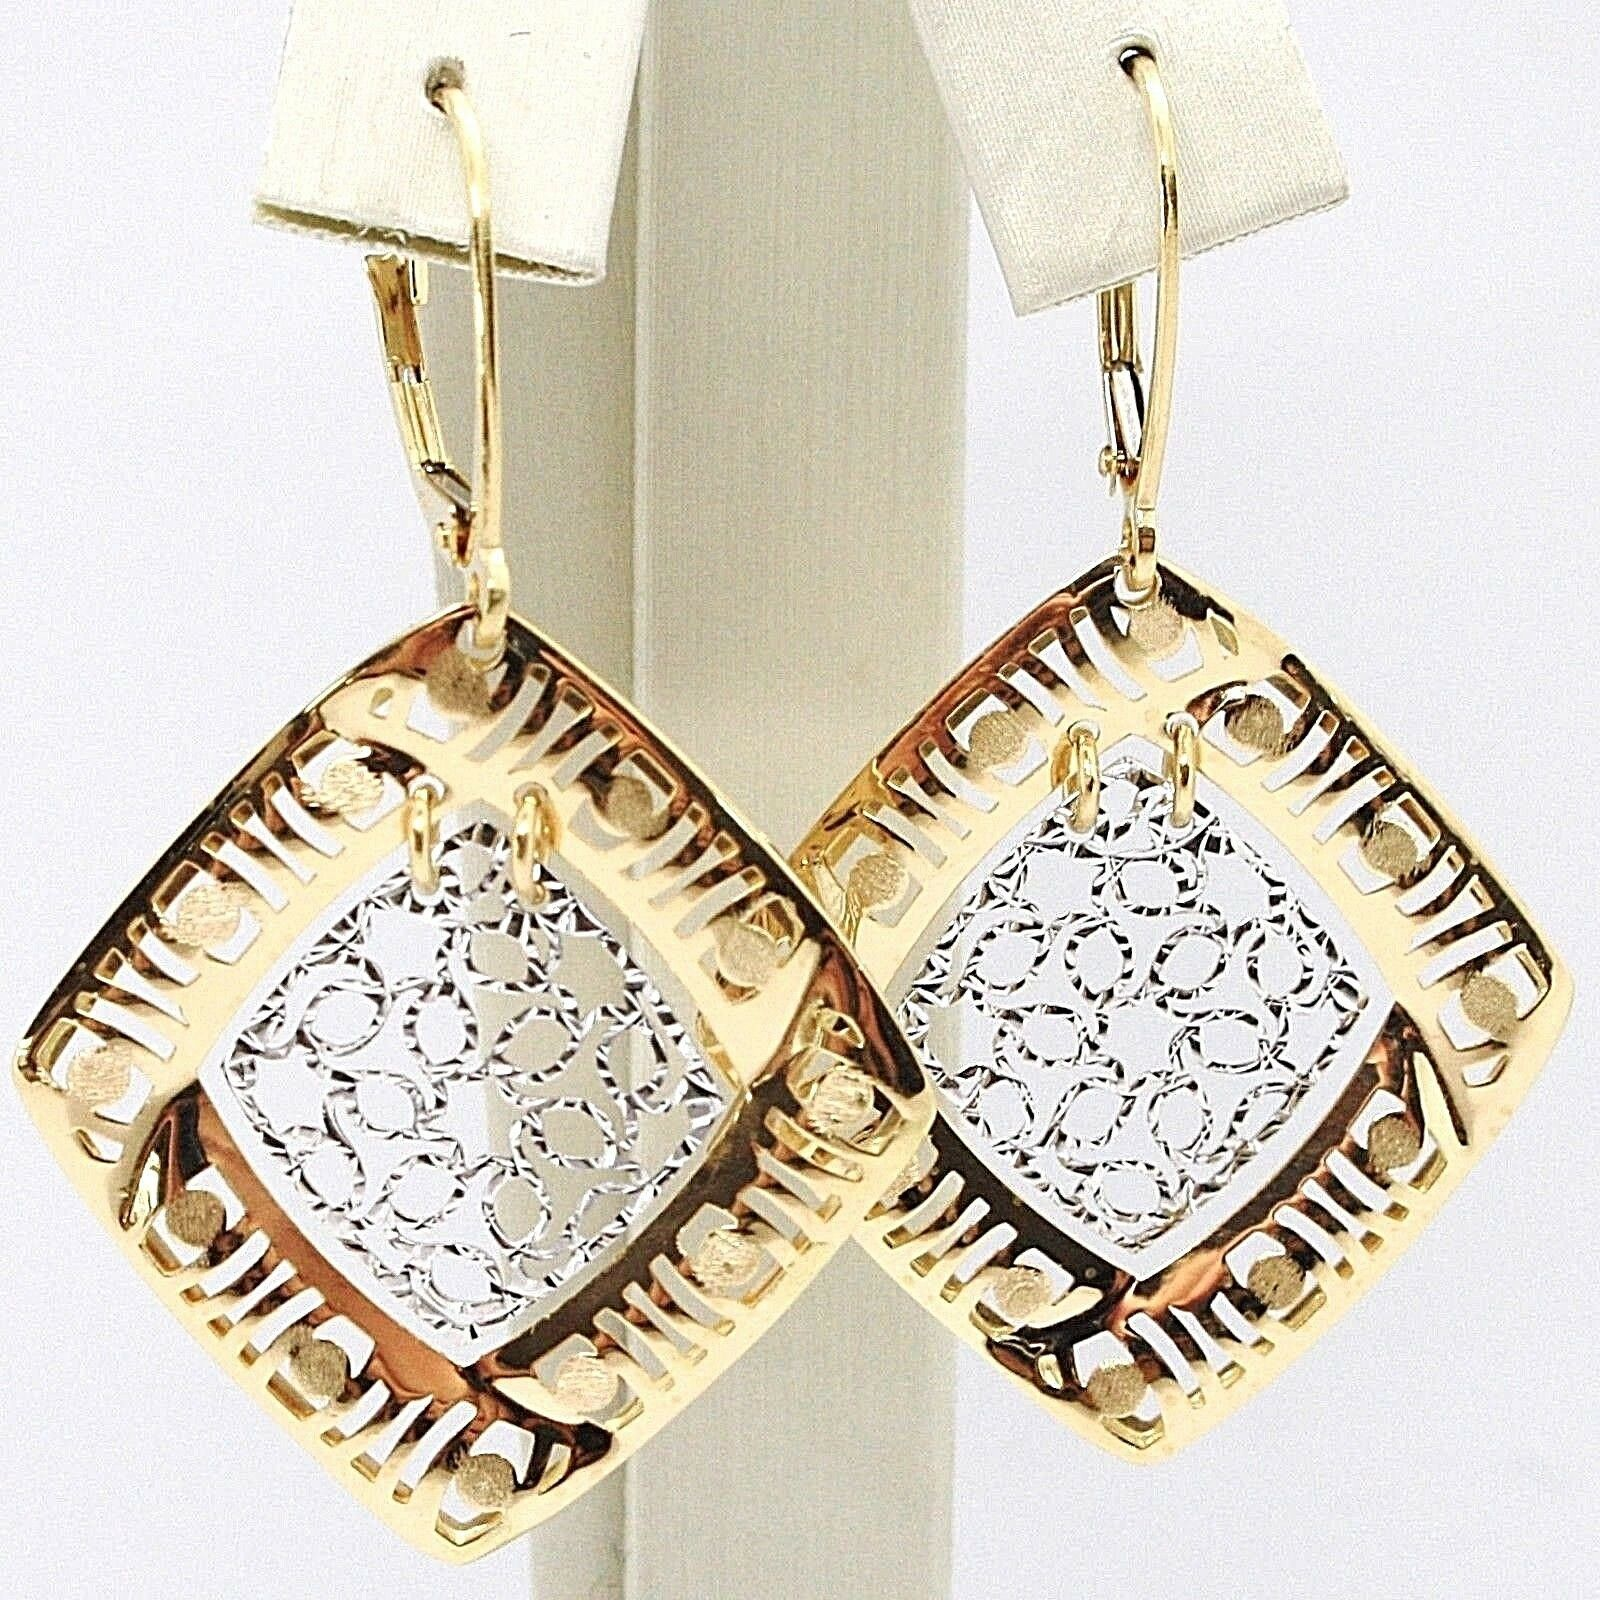 18K YELLOW WHITE GOLD PENDANT EARRINGS, FINELY WORKED RHOMBUS, MADE IN ITALY